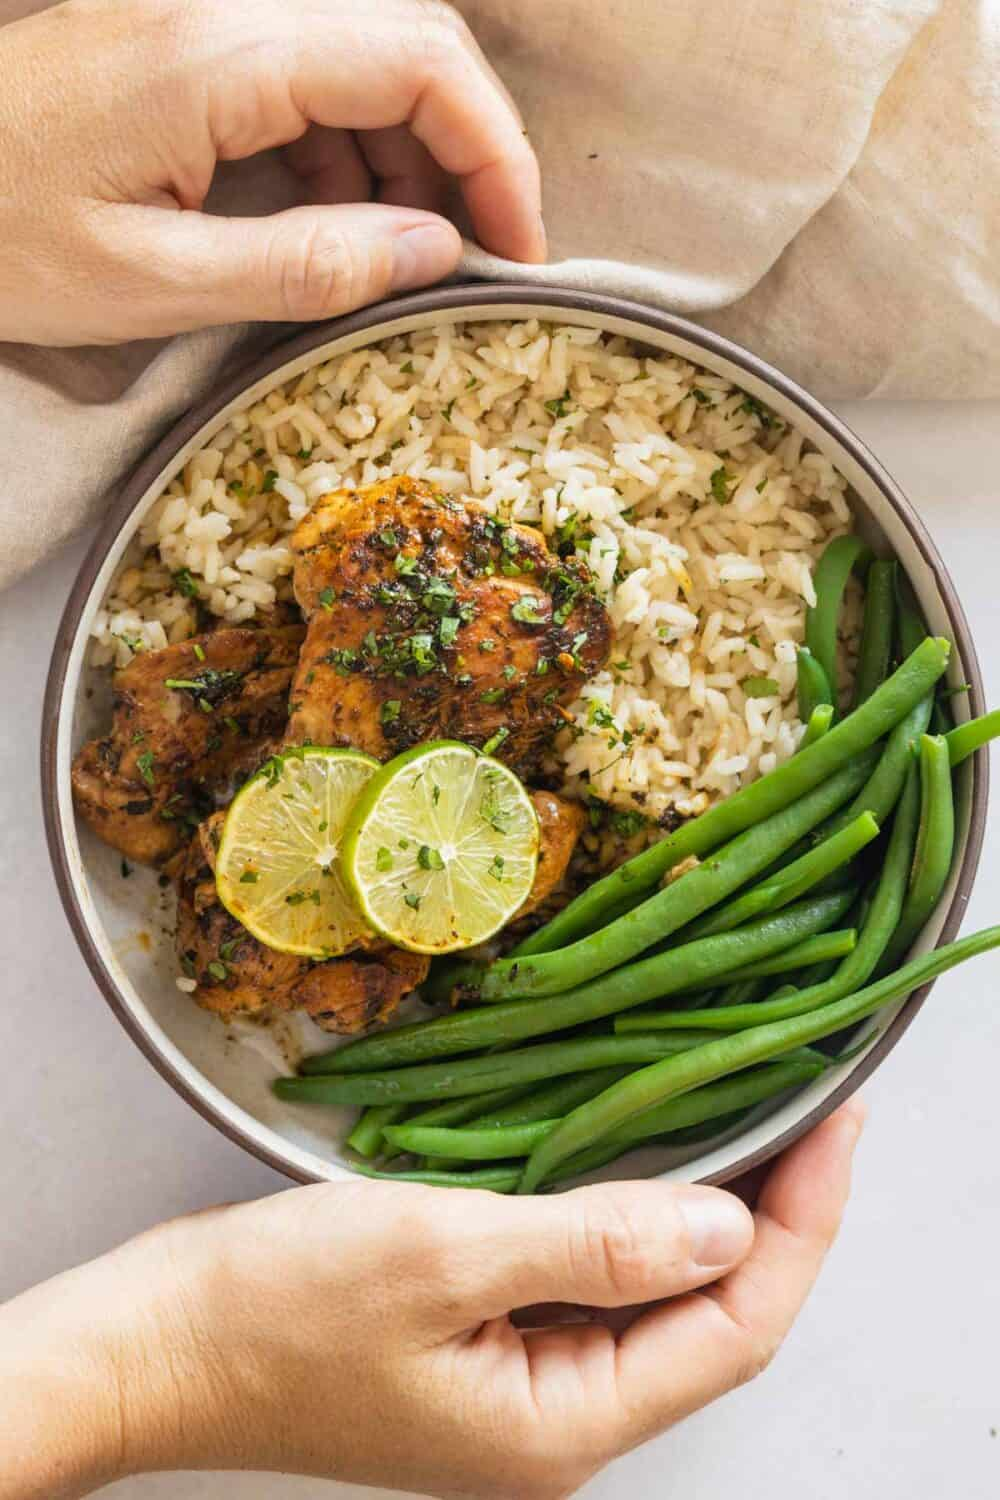 Coconut rice, cilantro lime chicken thighs, and green beans in a plate held in hands.